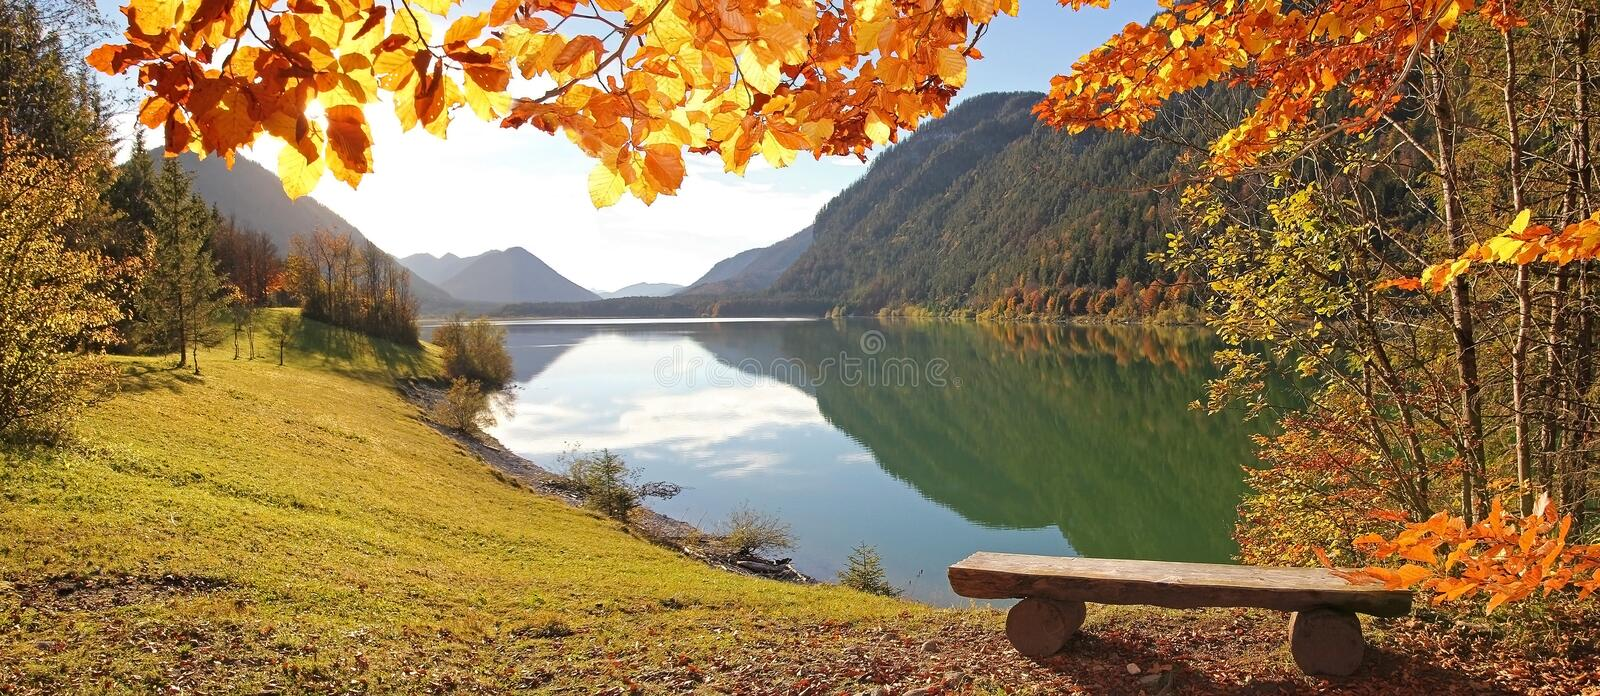 Idyllic Autumnal Scenery Lake Sylvenstein, Germany Stock Photo